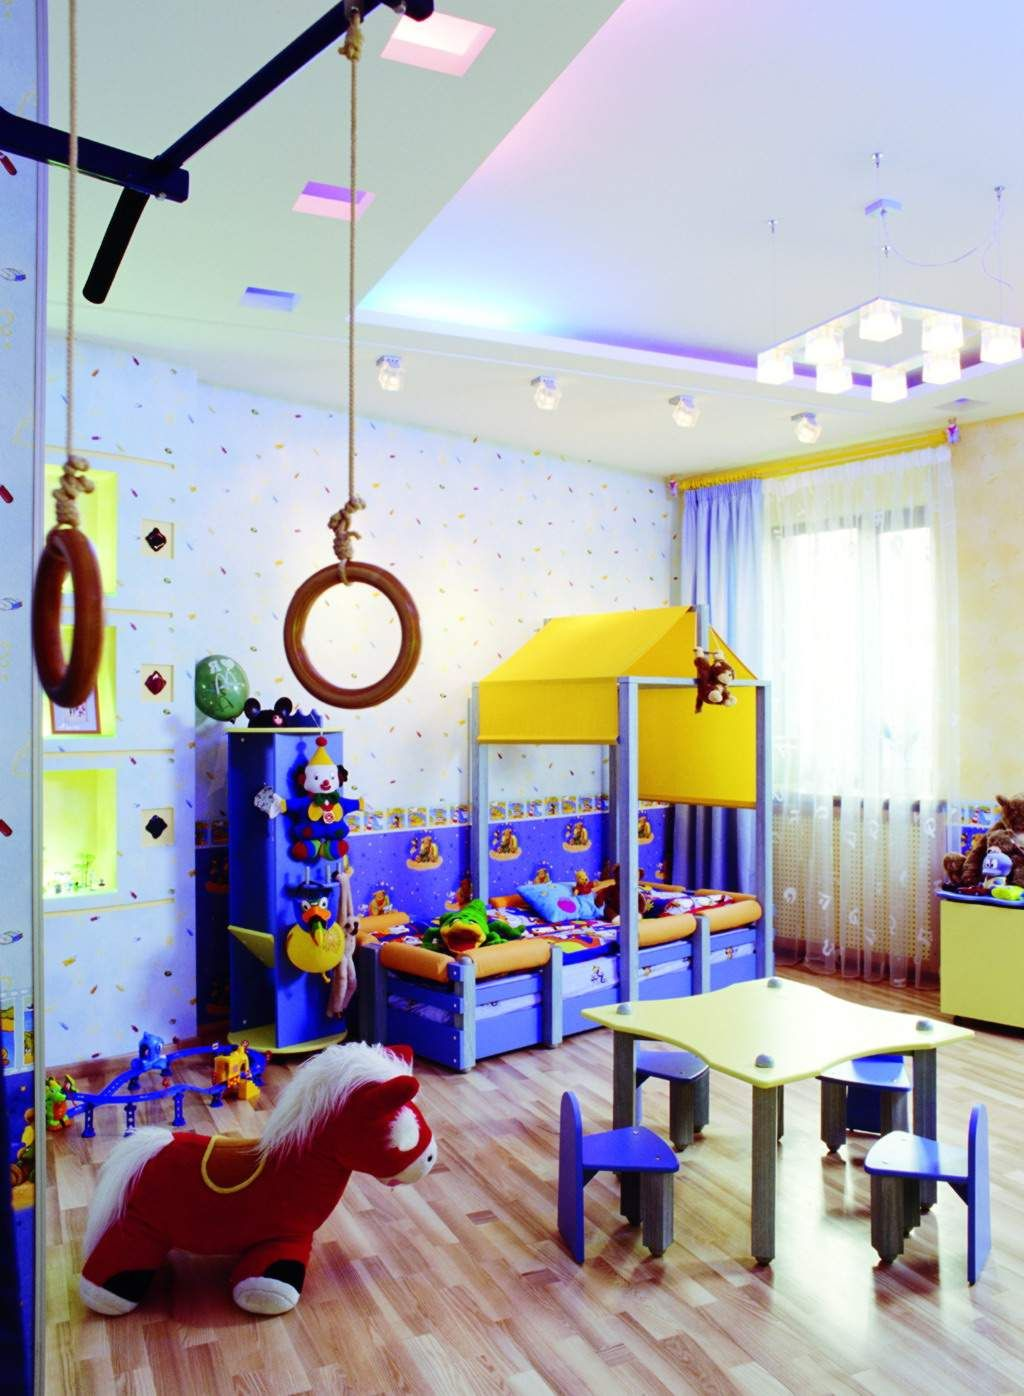 Kids bedroom kids room interior design with play and learn for Living room ideas kids